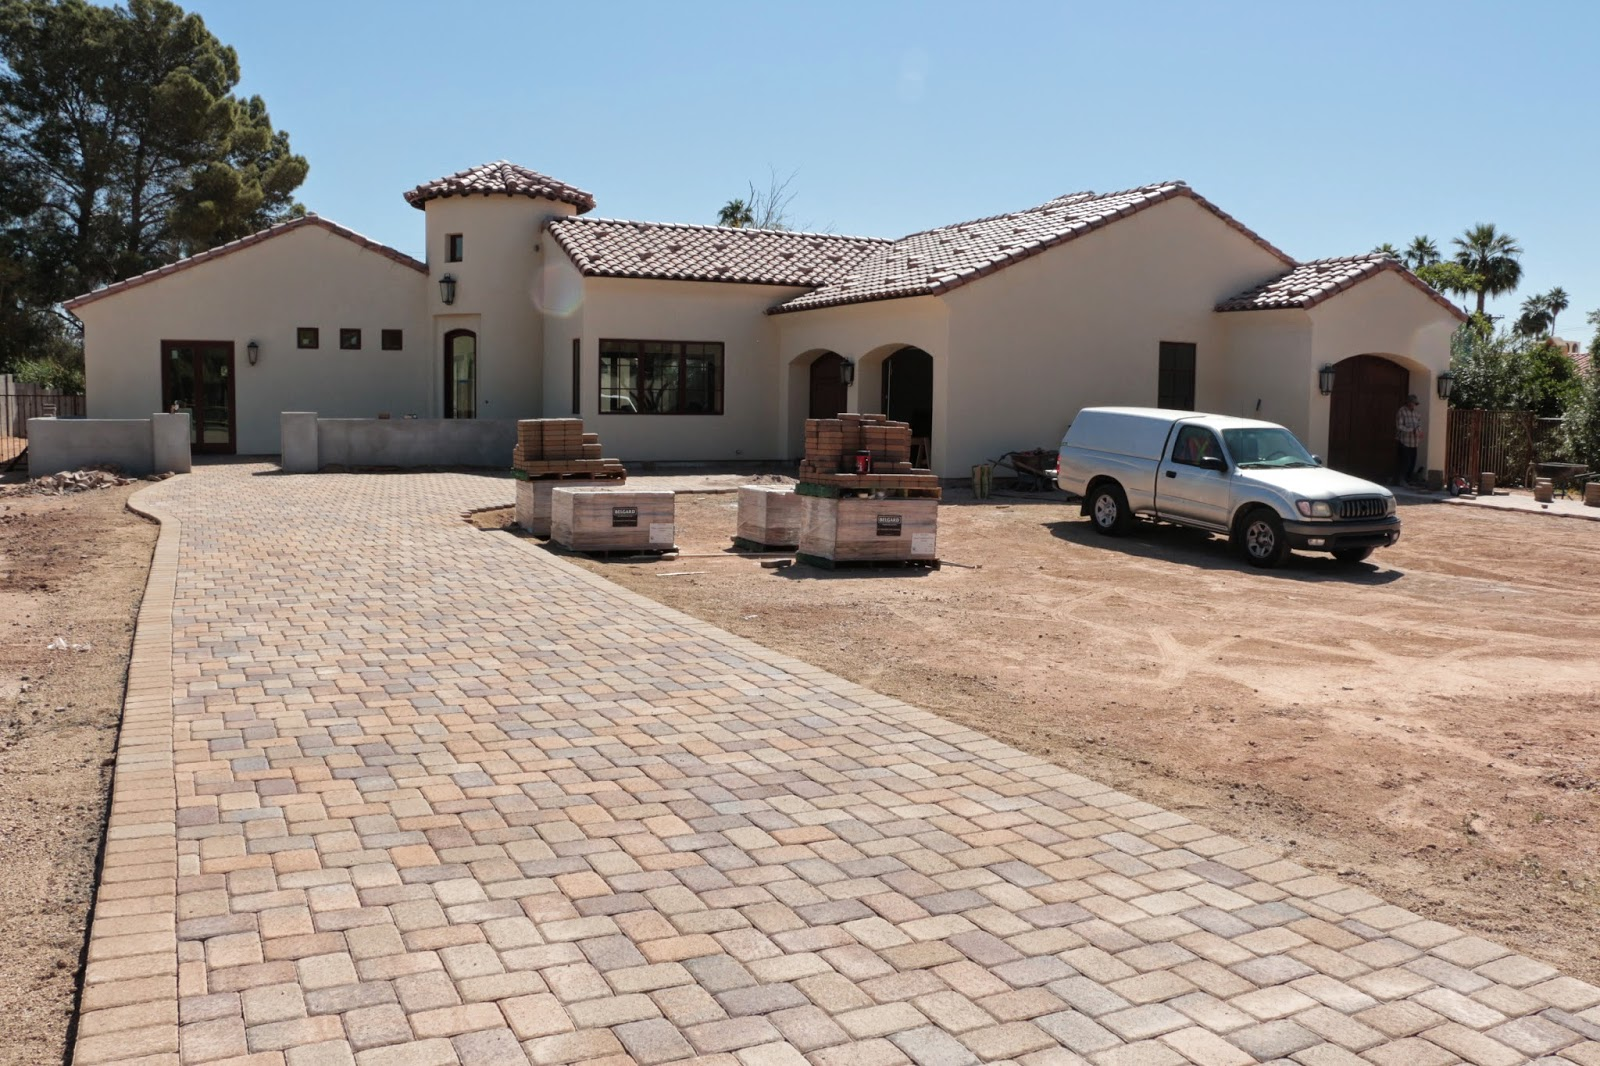 belgard pavers, belgard pavers in mohave and toscana mix